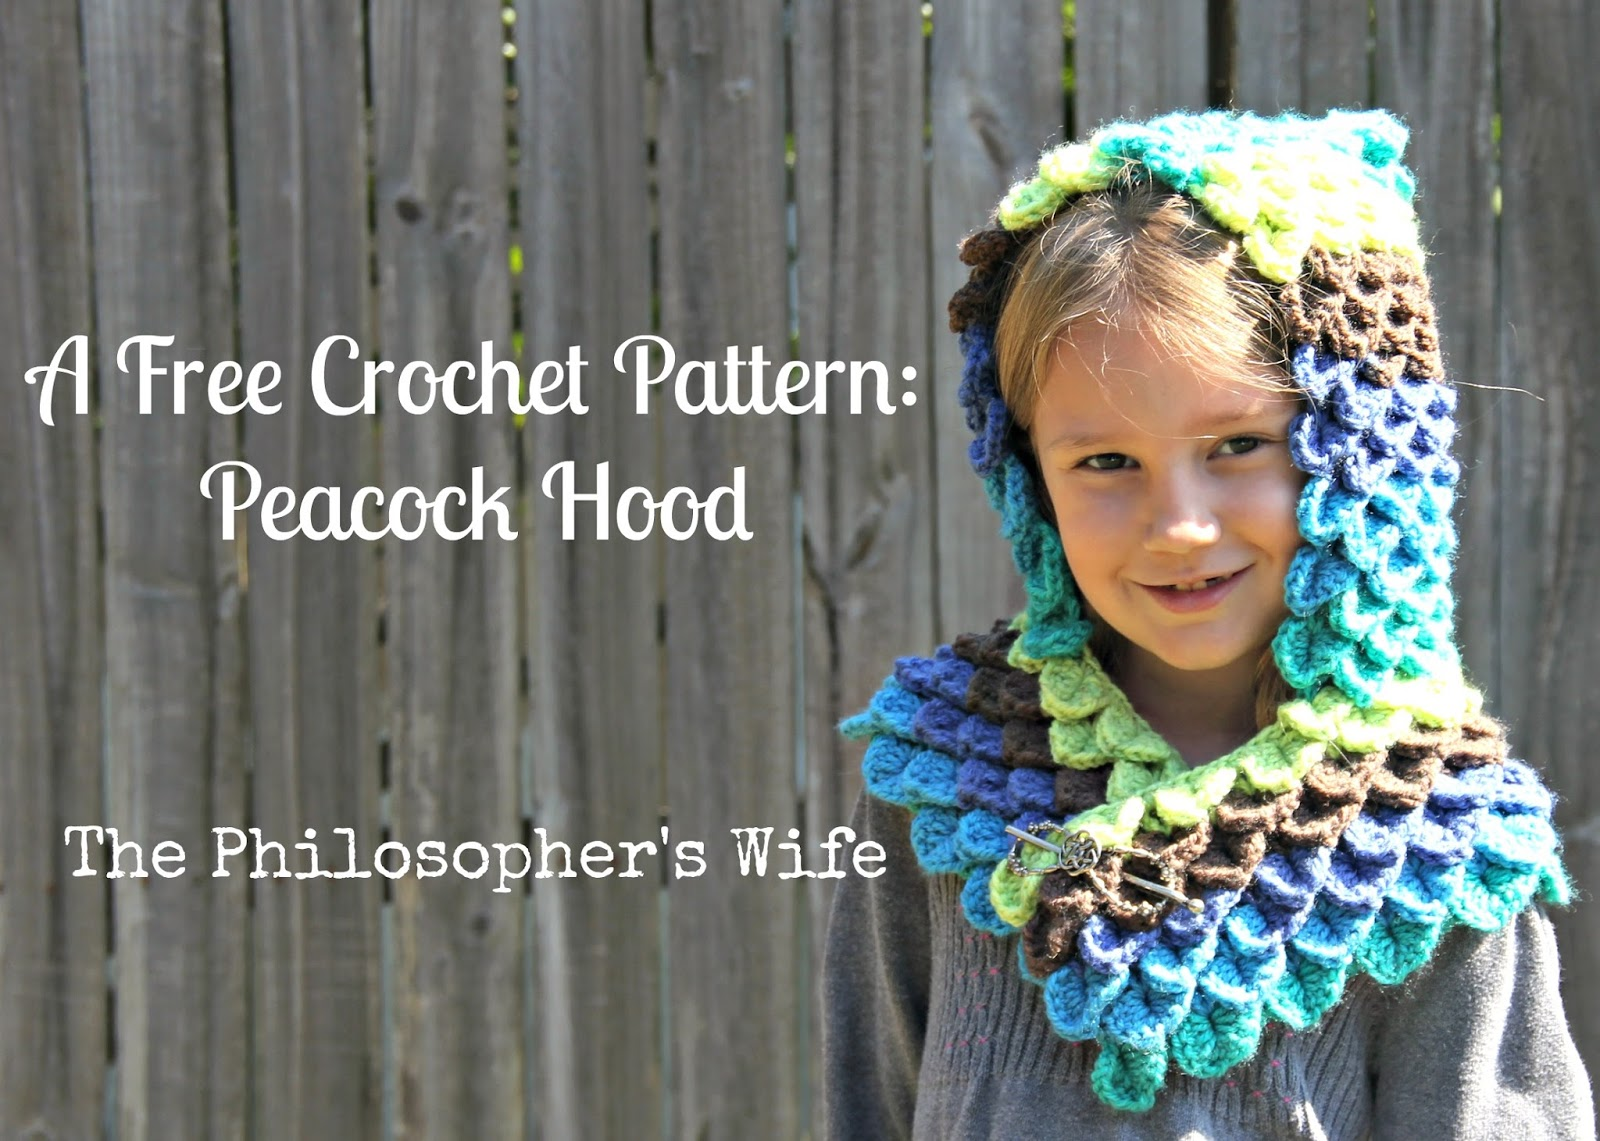 The philosophers wife a free crochet pattern peacock hood i loved crocheting this peacock hood i was lucky enough to get my hands on a couple of caron cakes in gelato during the initial release bankloansurffo Images